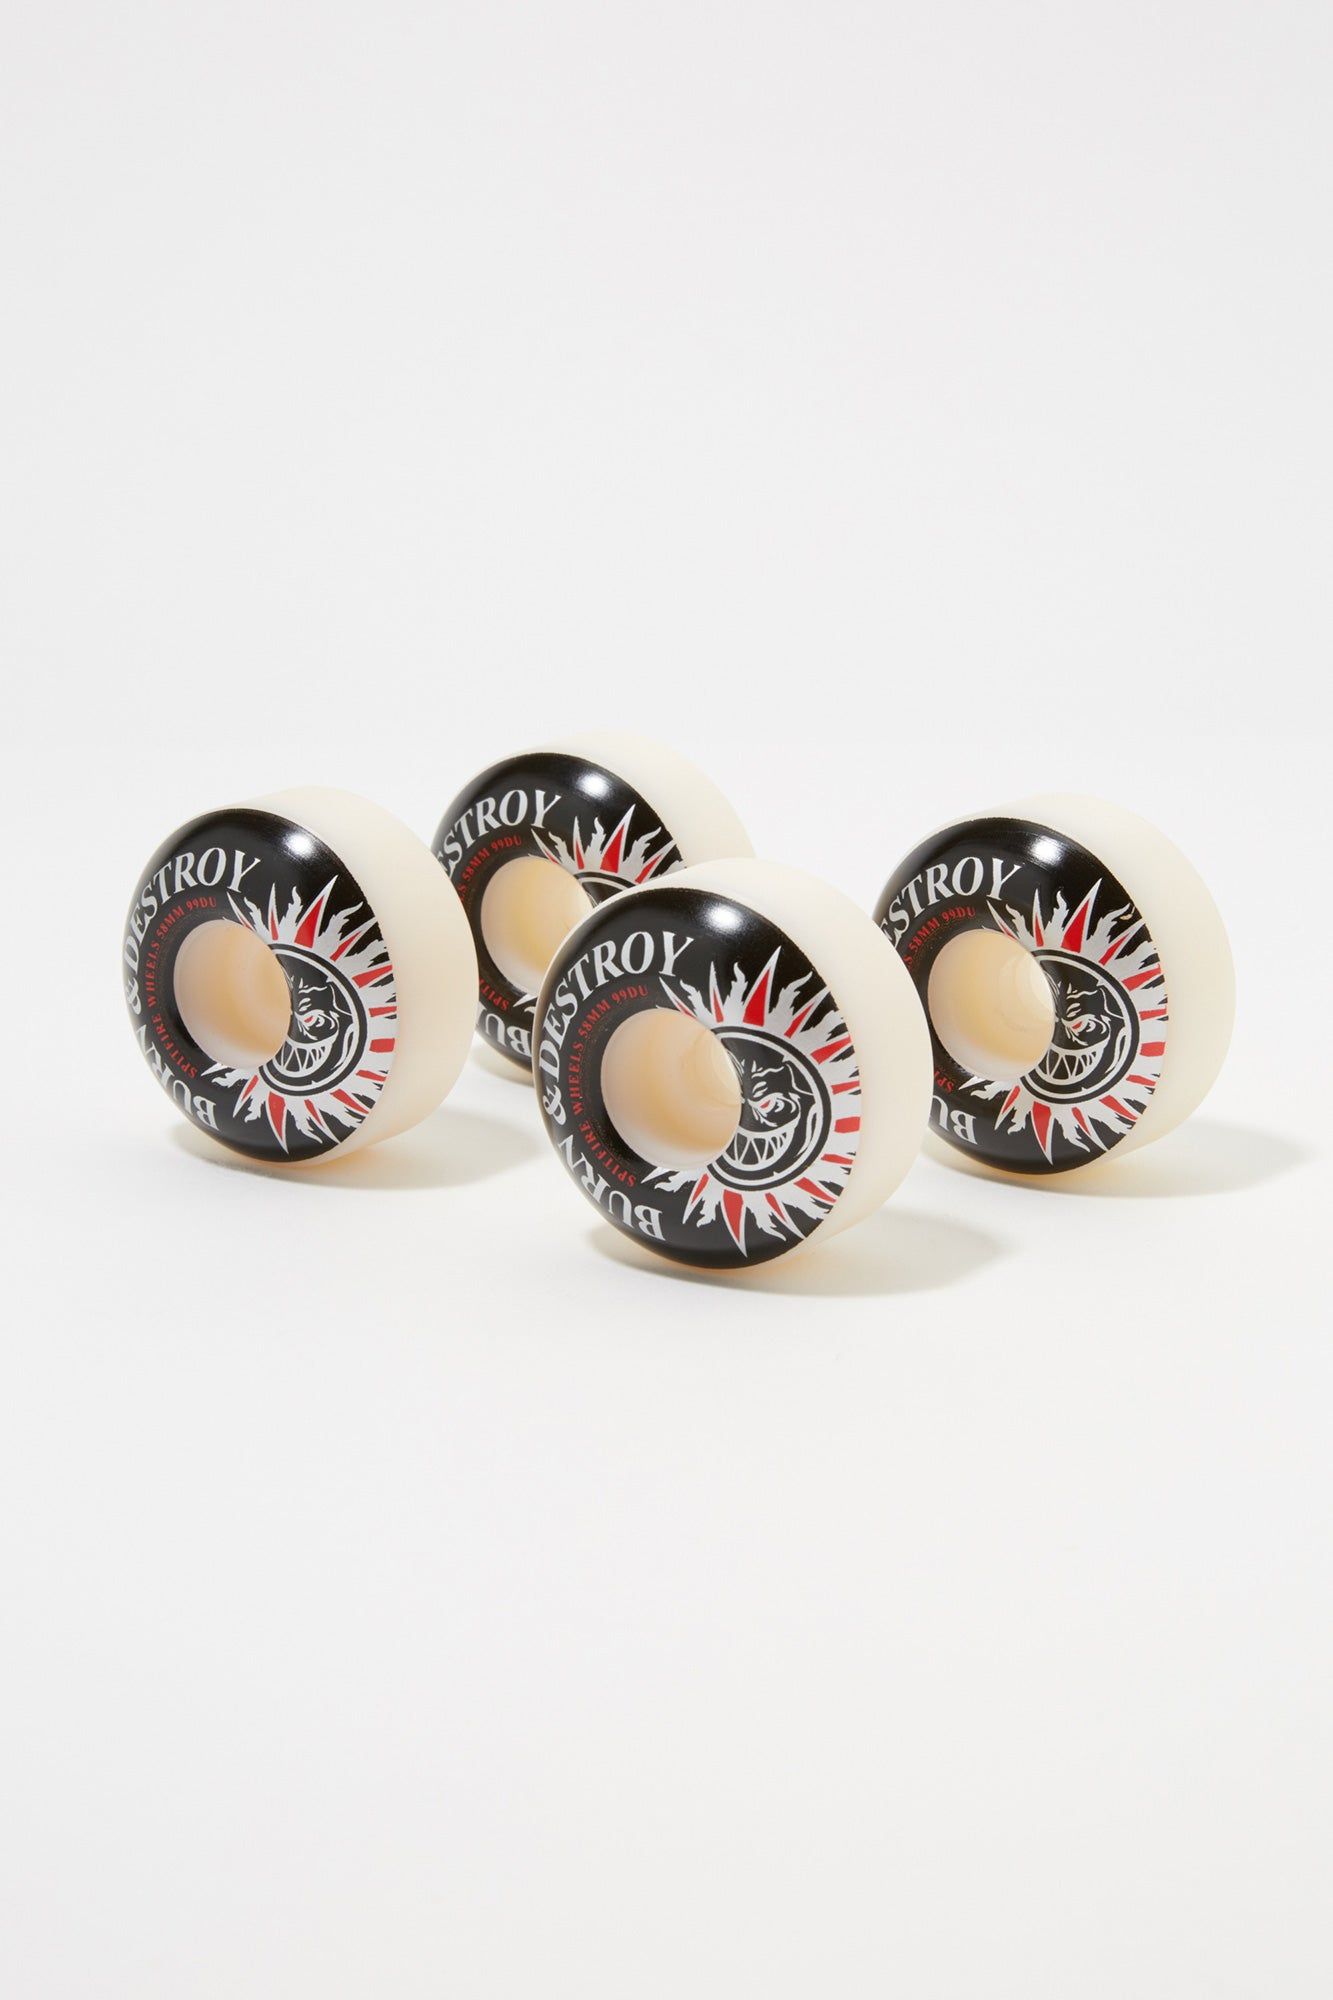 Spitfire 99D Burn & Destroy 58mm Wheels